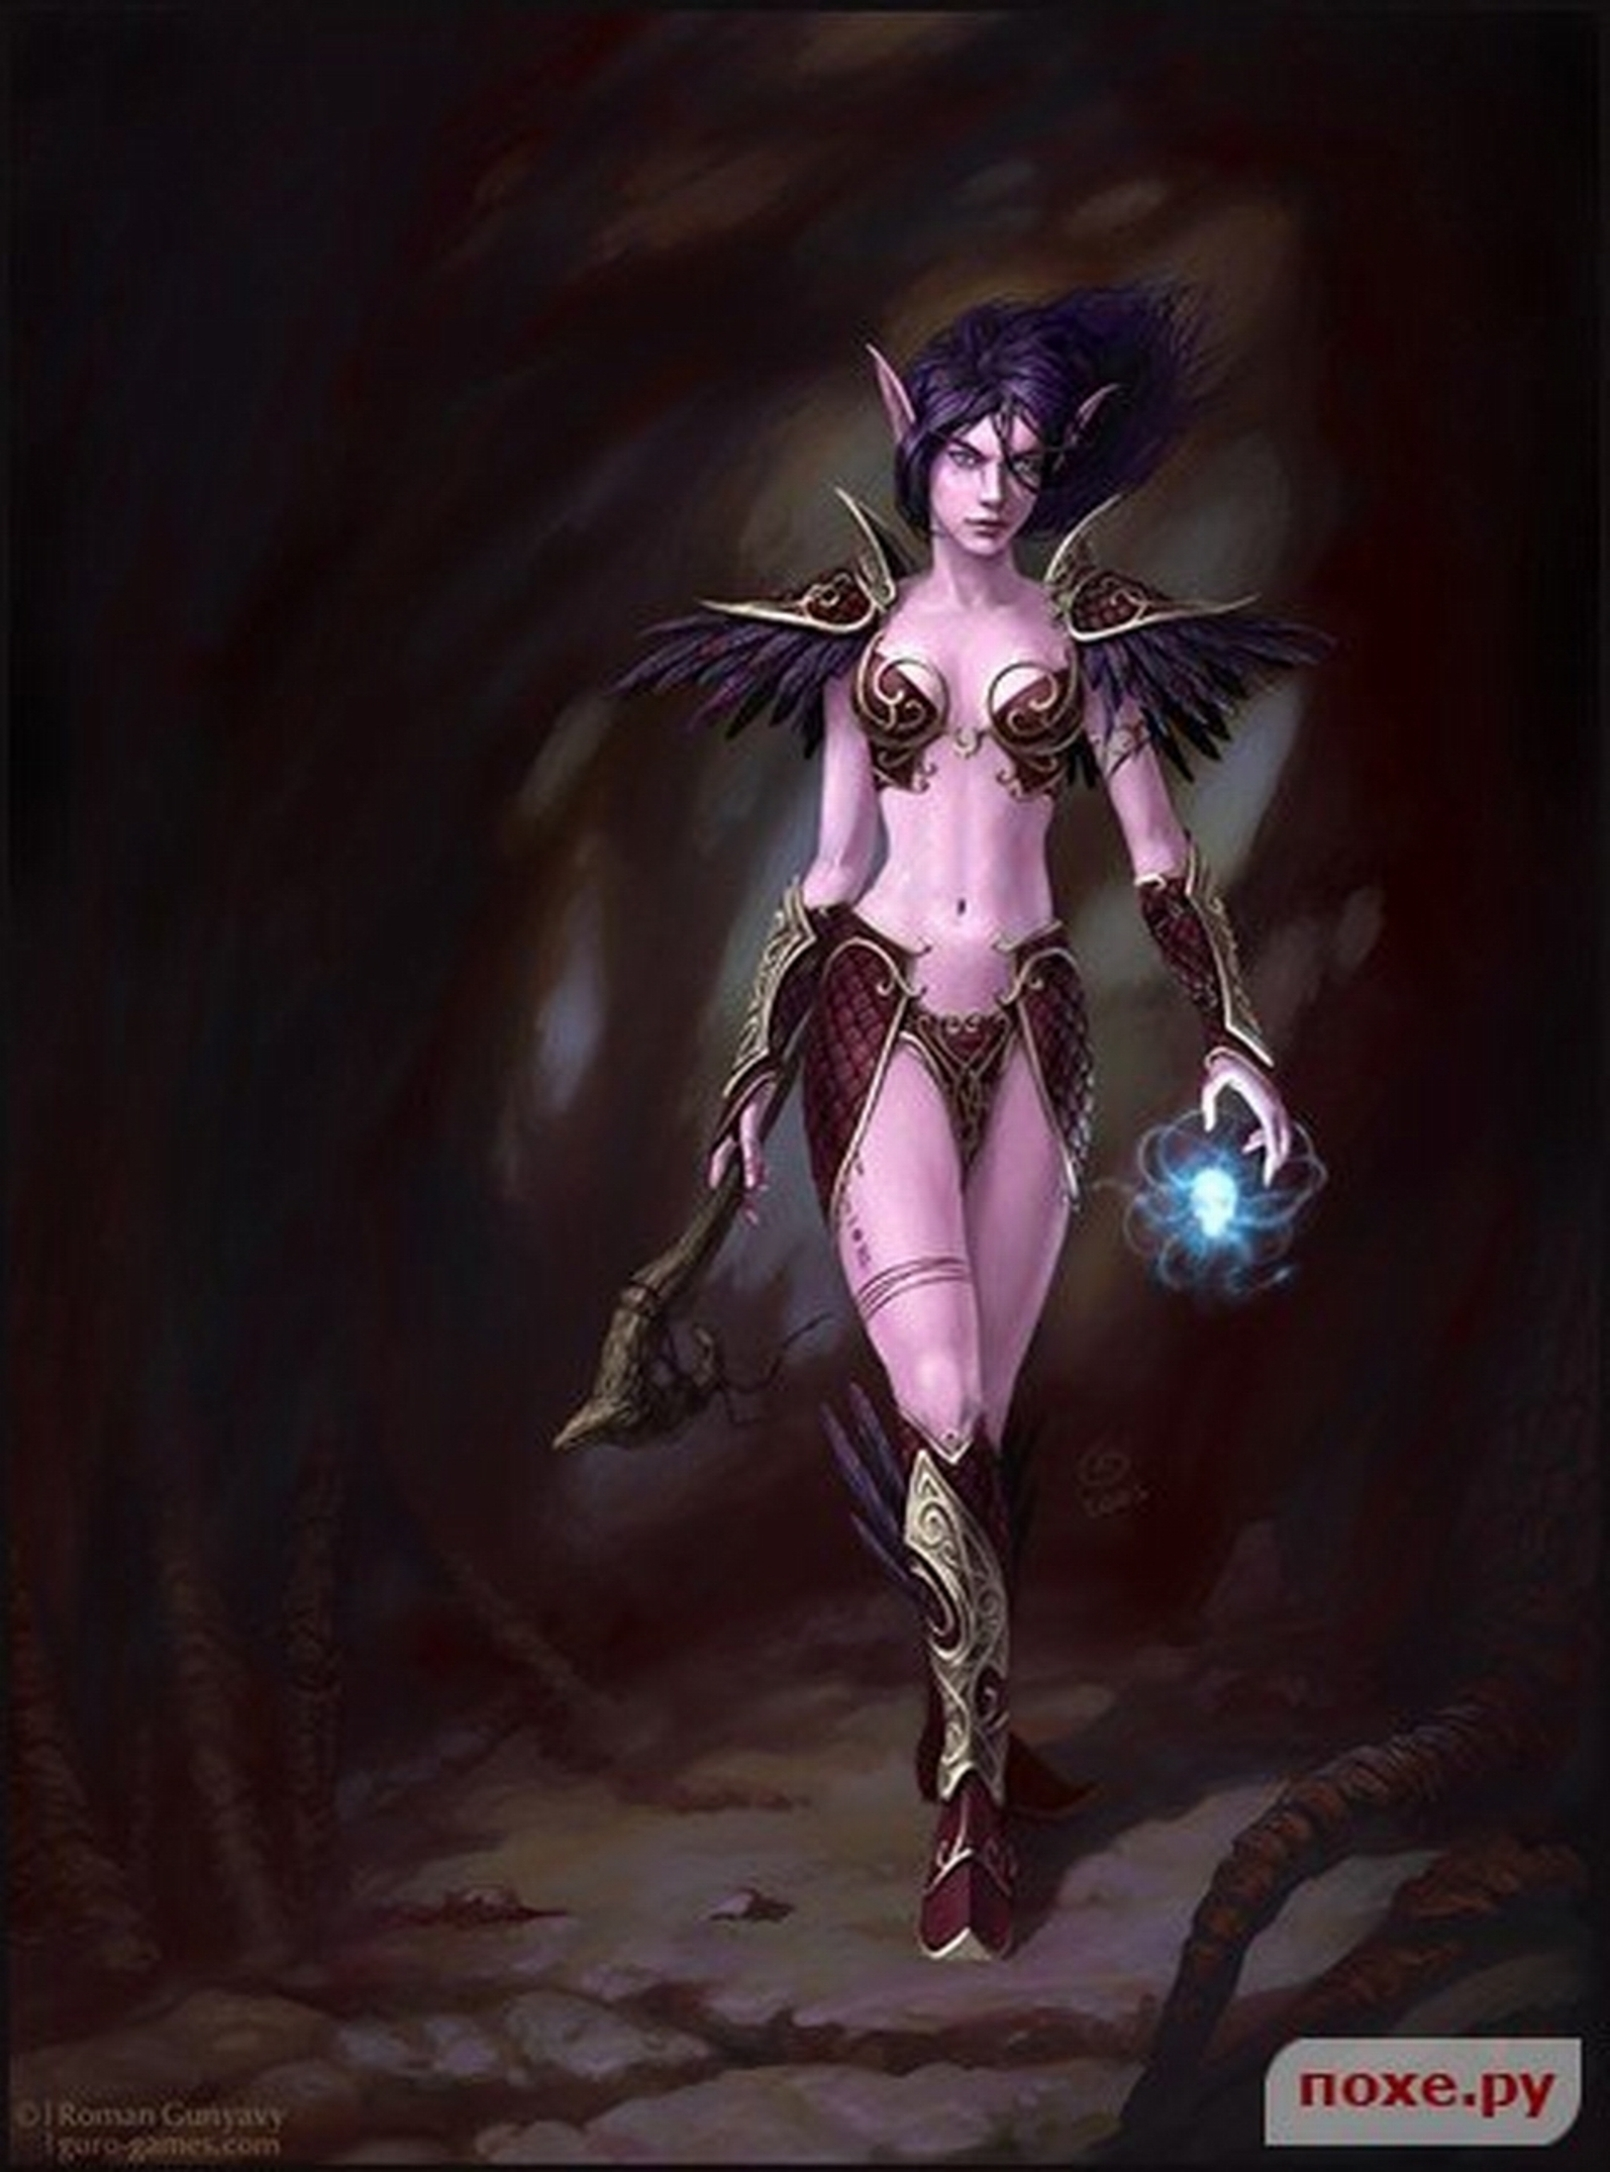 Hot night elf porno tube